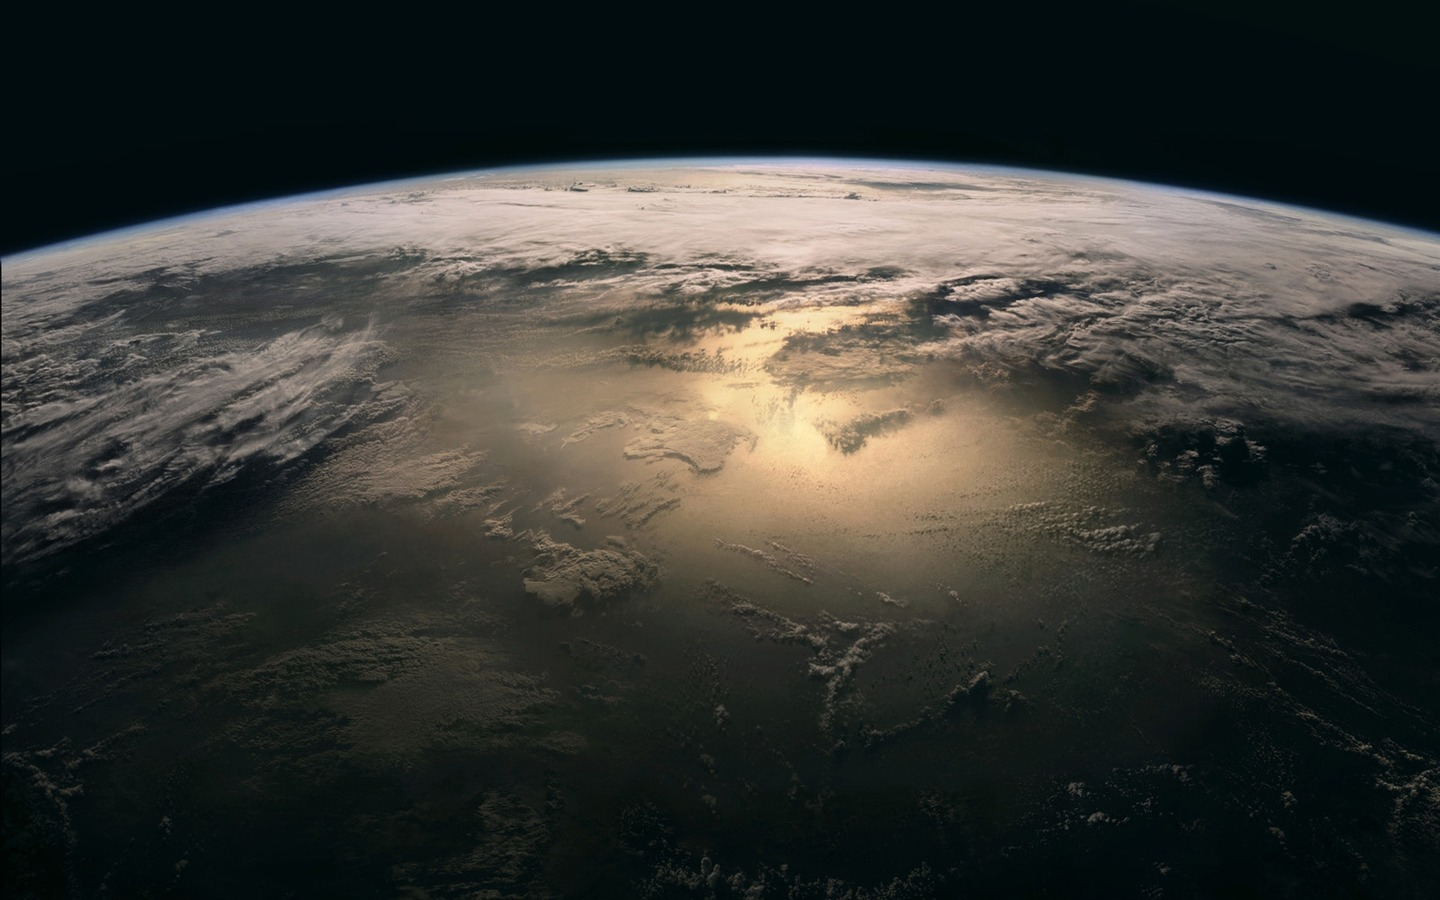 Earth space desktop wallpaper 1440x900 desktop wallpaper - Nasa space wallpaper ...